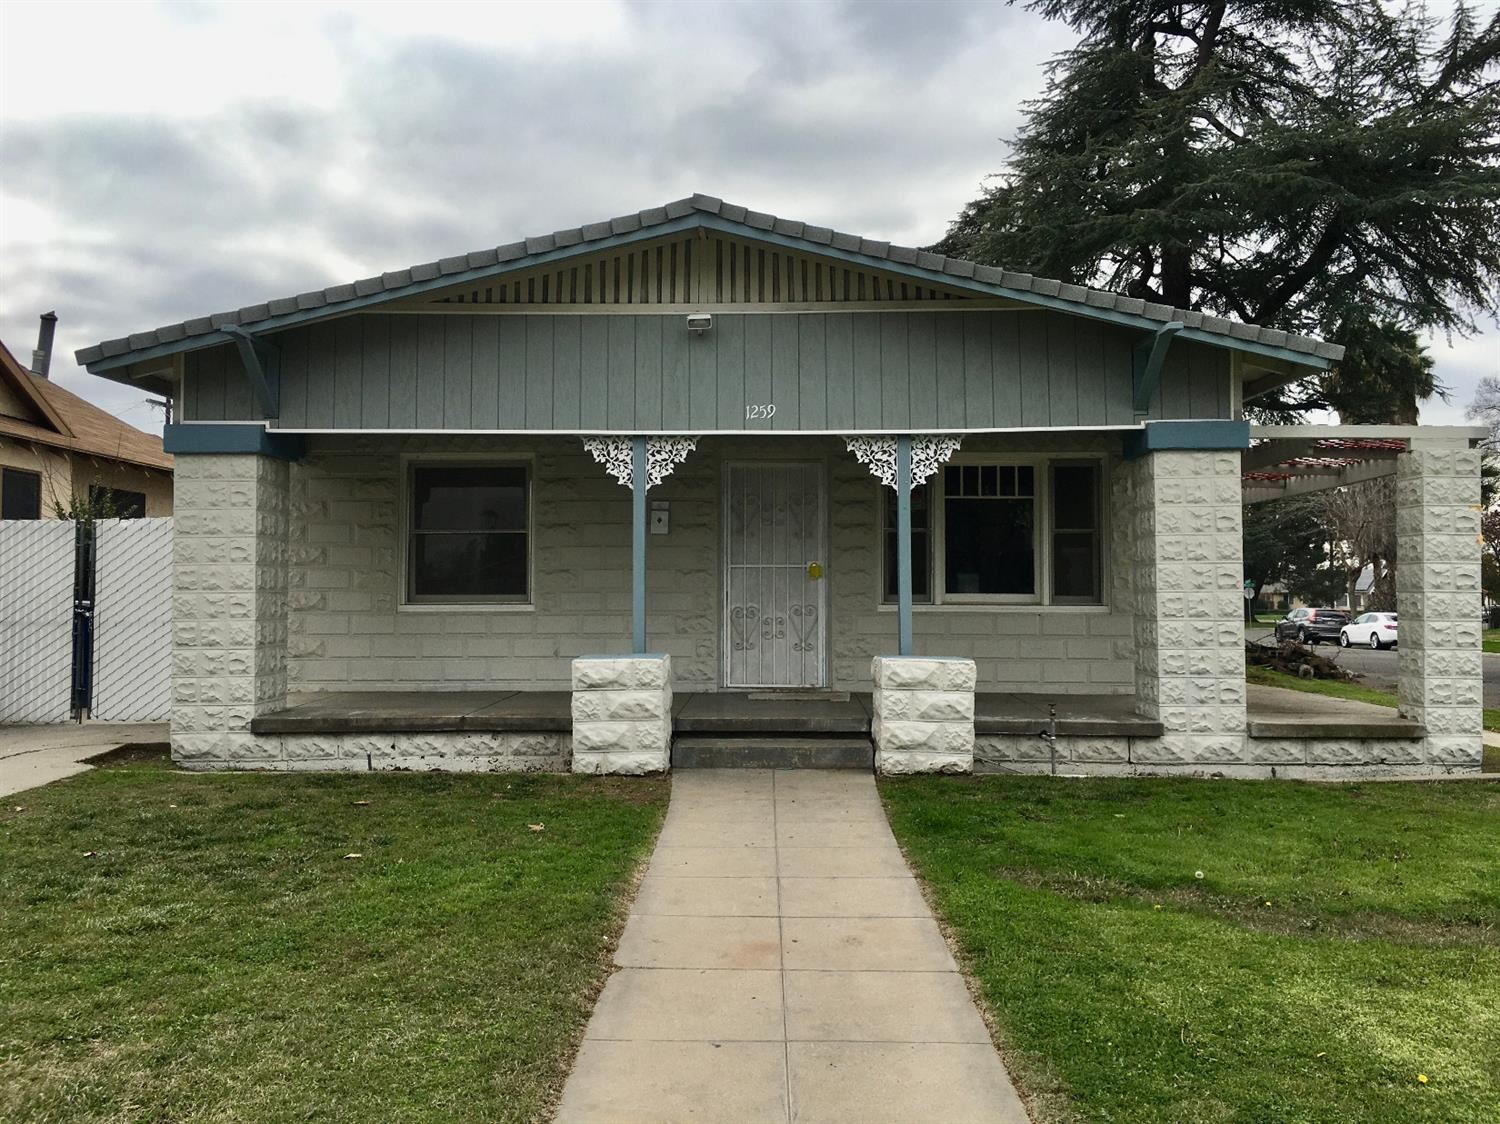 1259 Waterman Avenue, Fresno, CA 93706 - MLS#: 535837